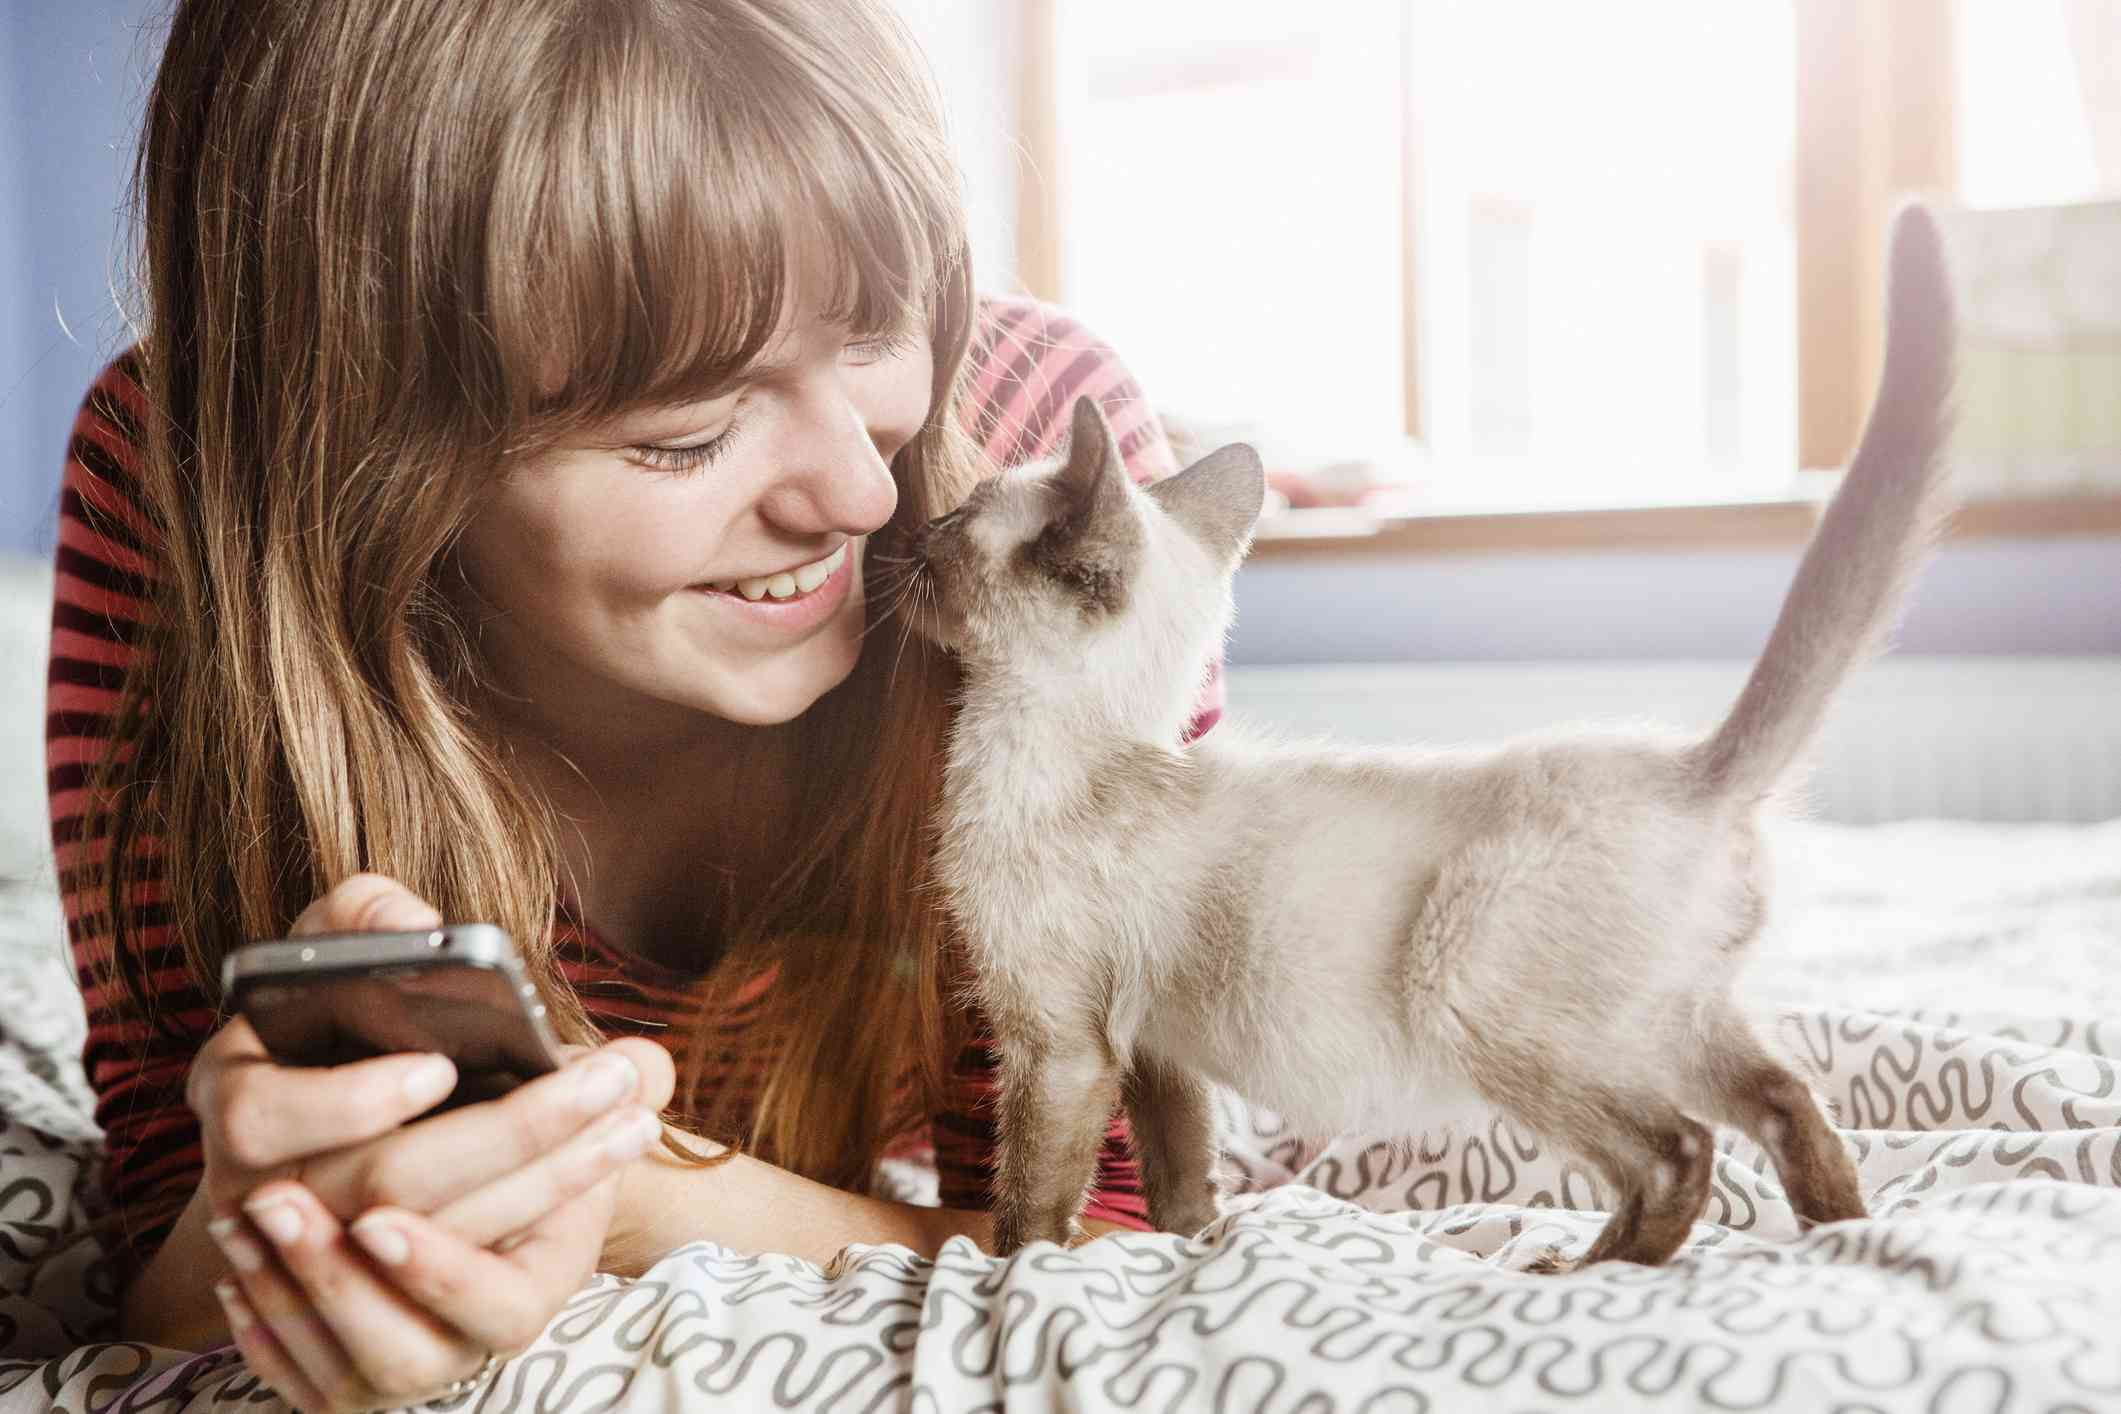 Young woman holding her phone and getting cuddles from a kitten.